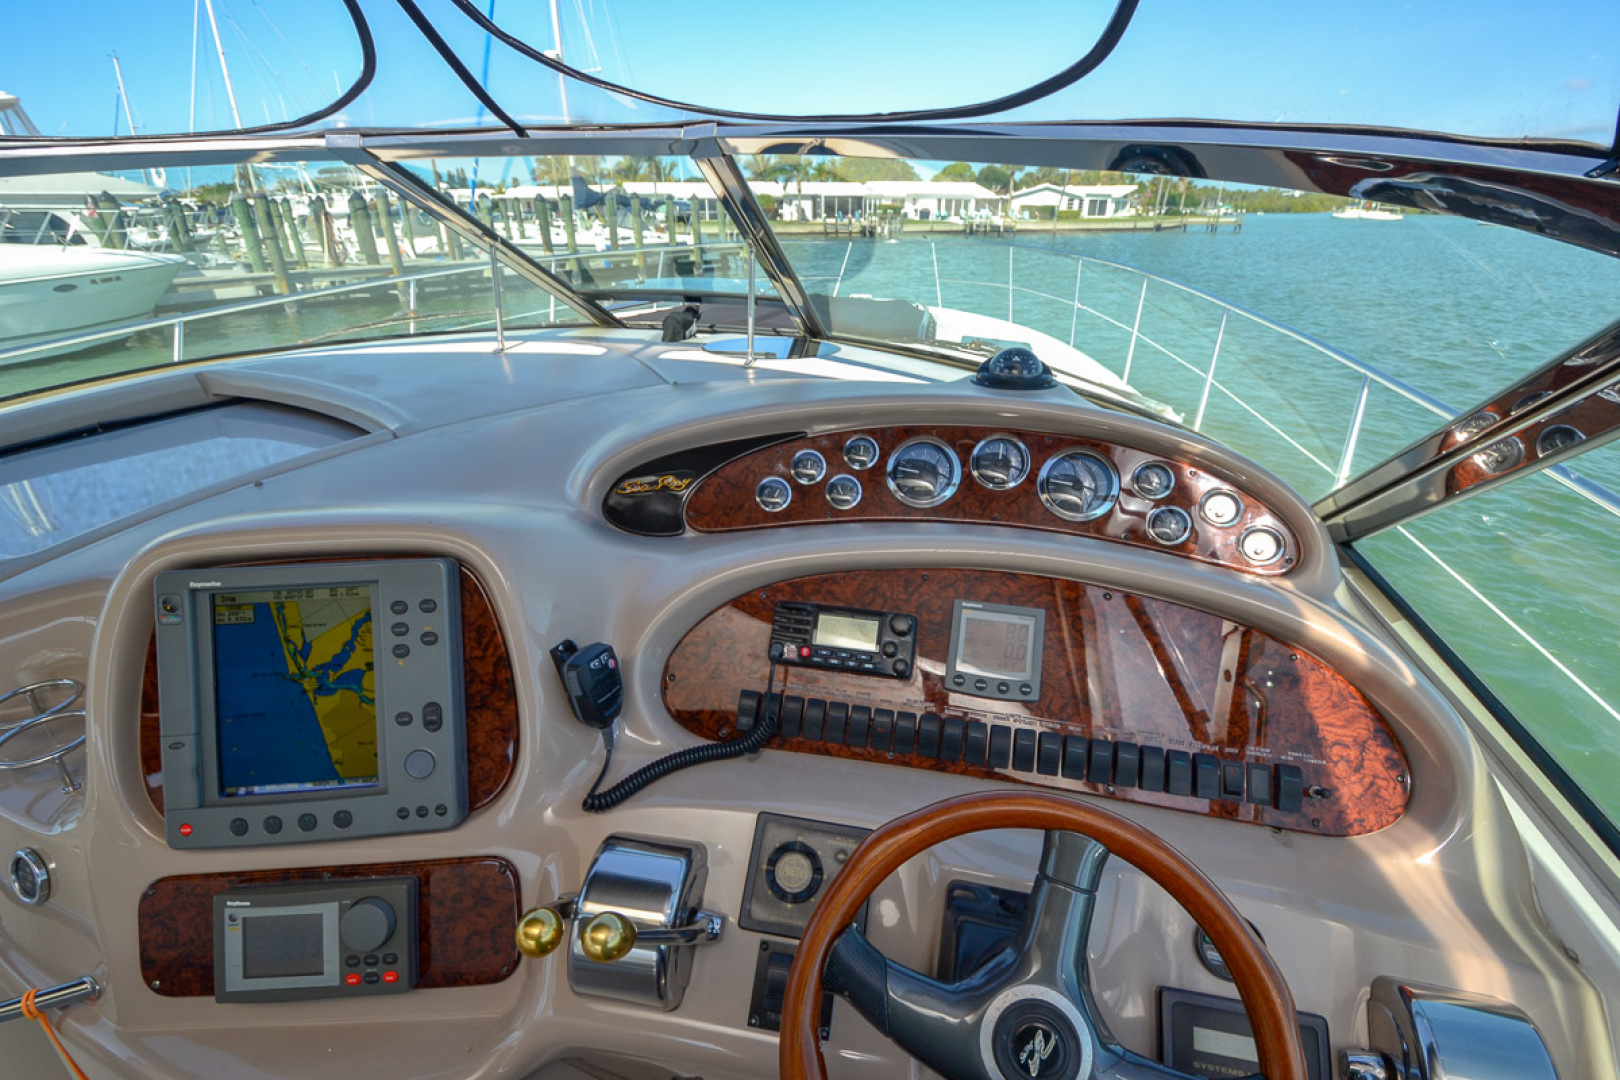 2000 Sea Ray 410 Sundancer-27.jpg